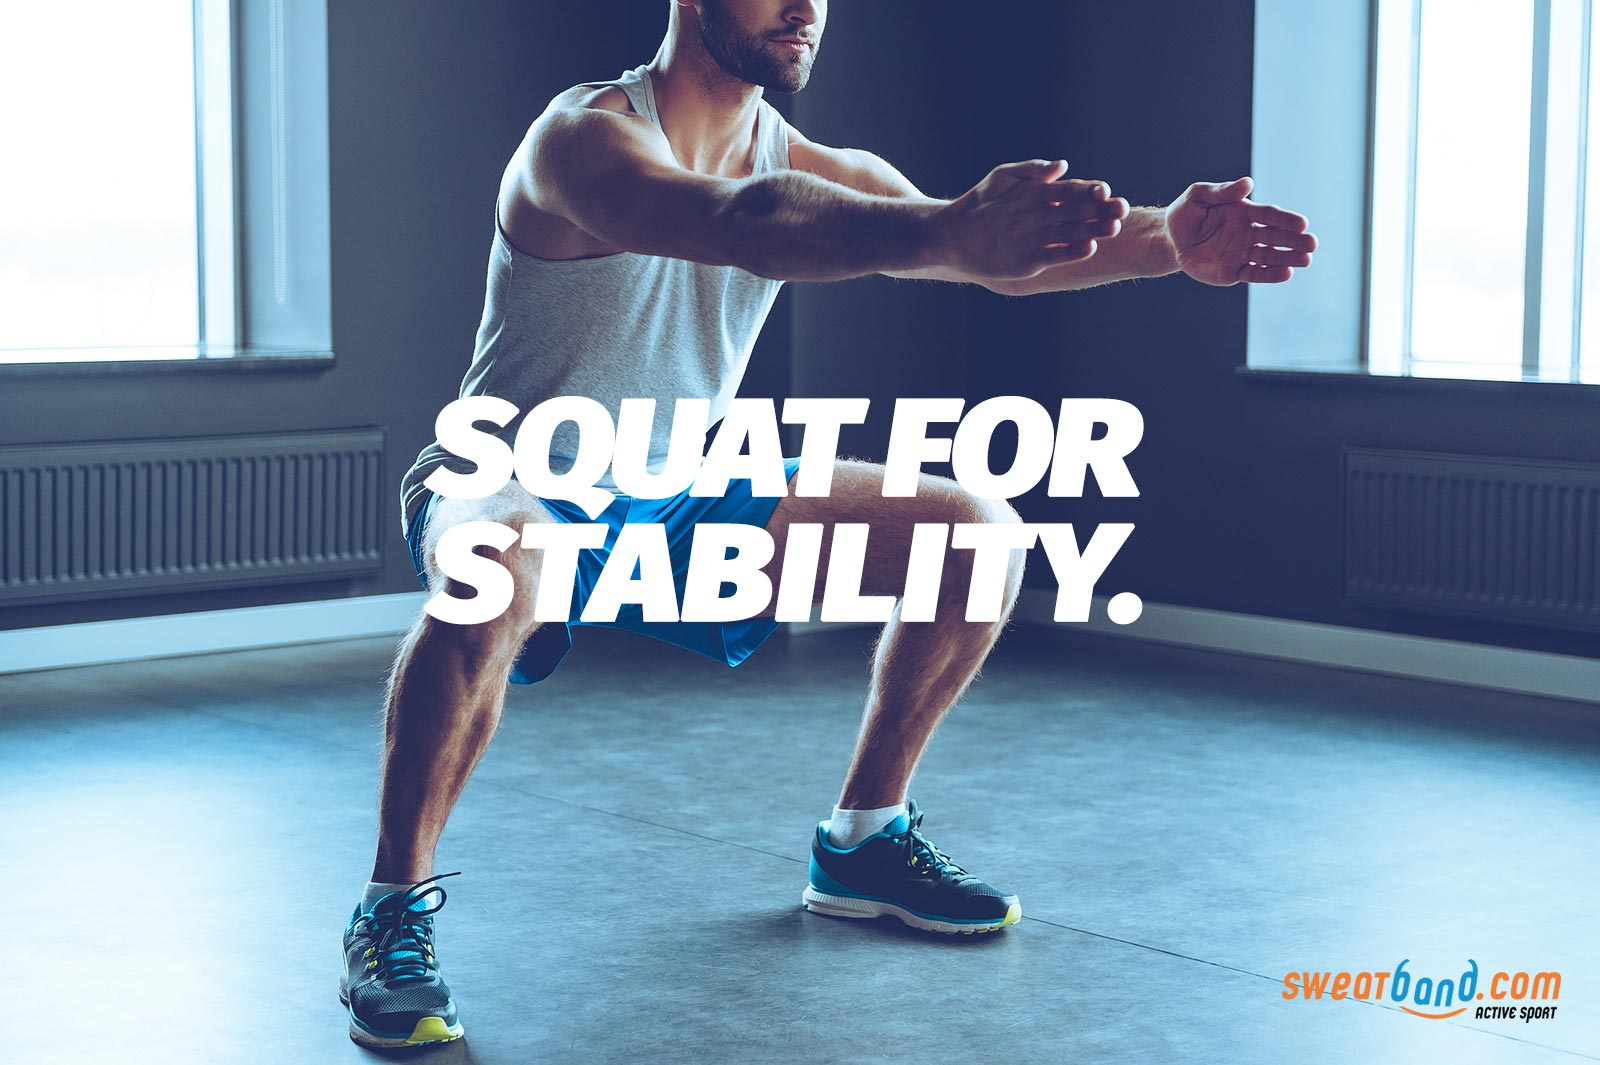 Start squatting to build up strength and stability in you legs for your golf swing